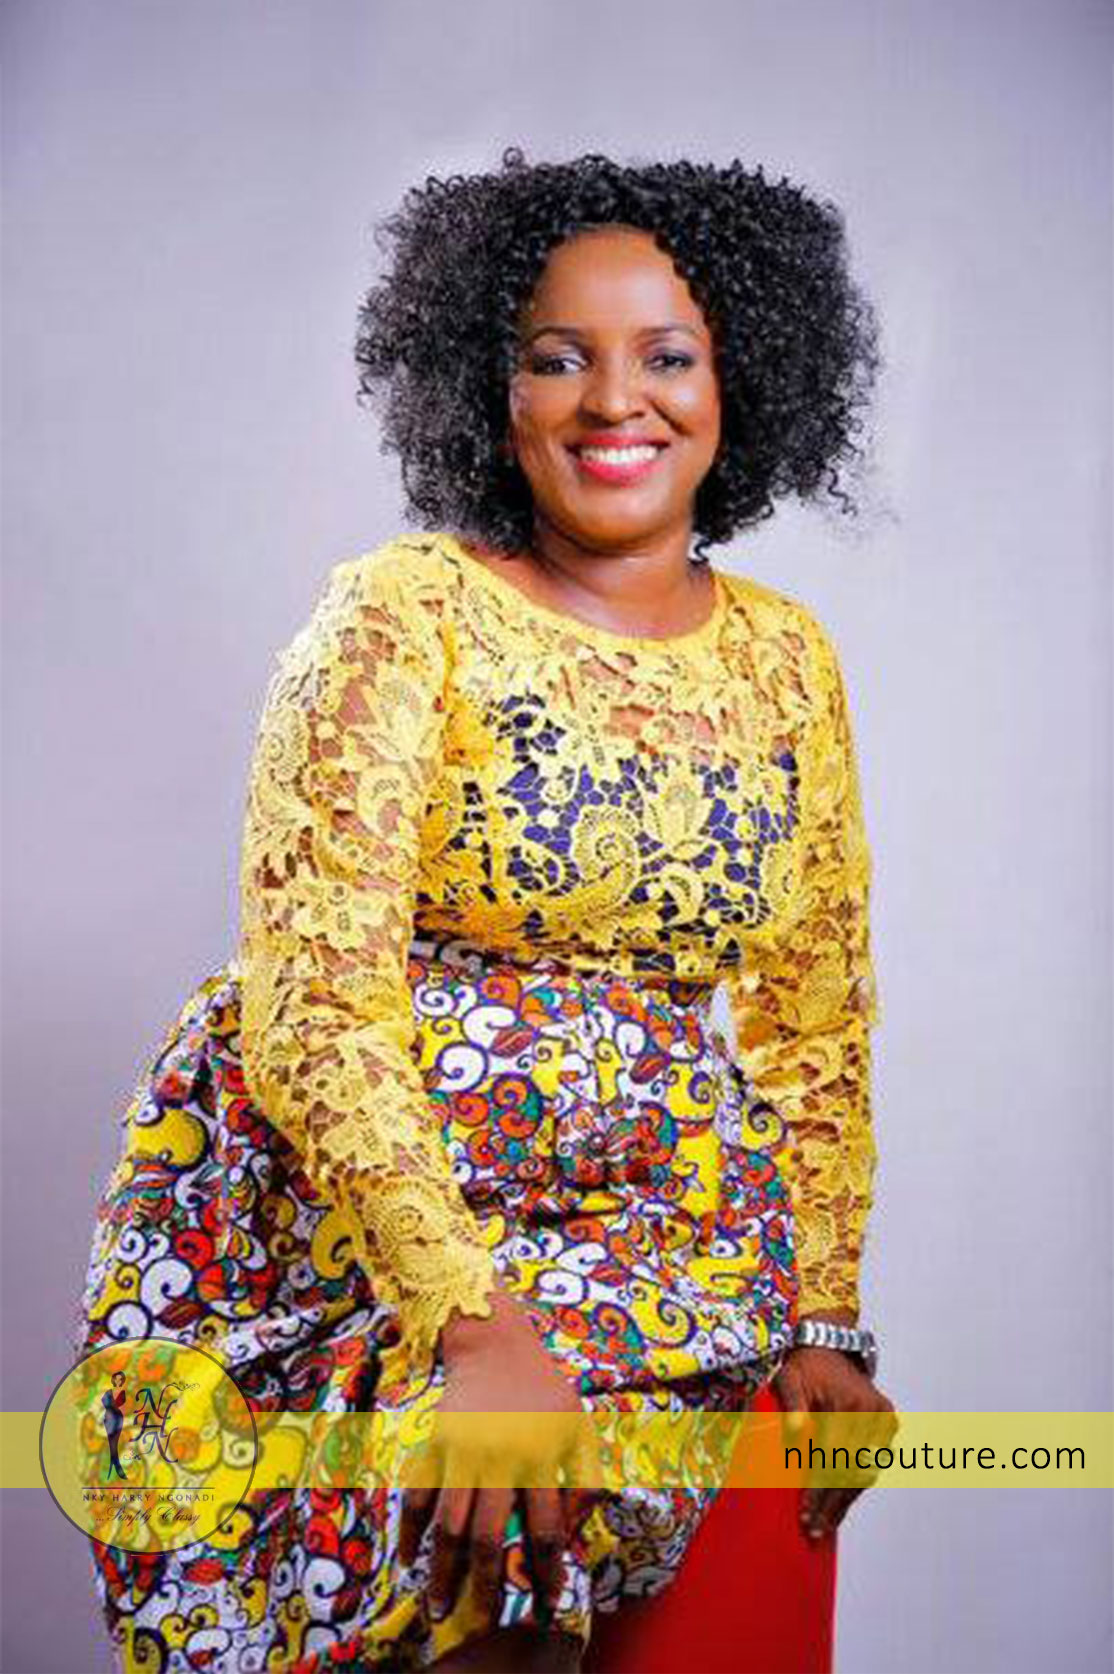 Gozie-Udemezue-in-NHN-Couture_Yellow-Top-and-Print-Skirt-2